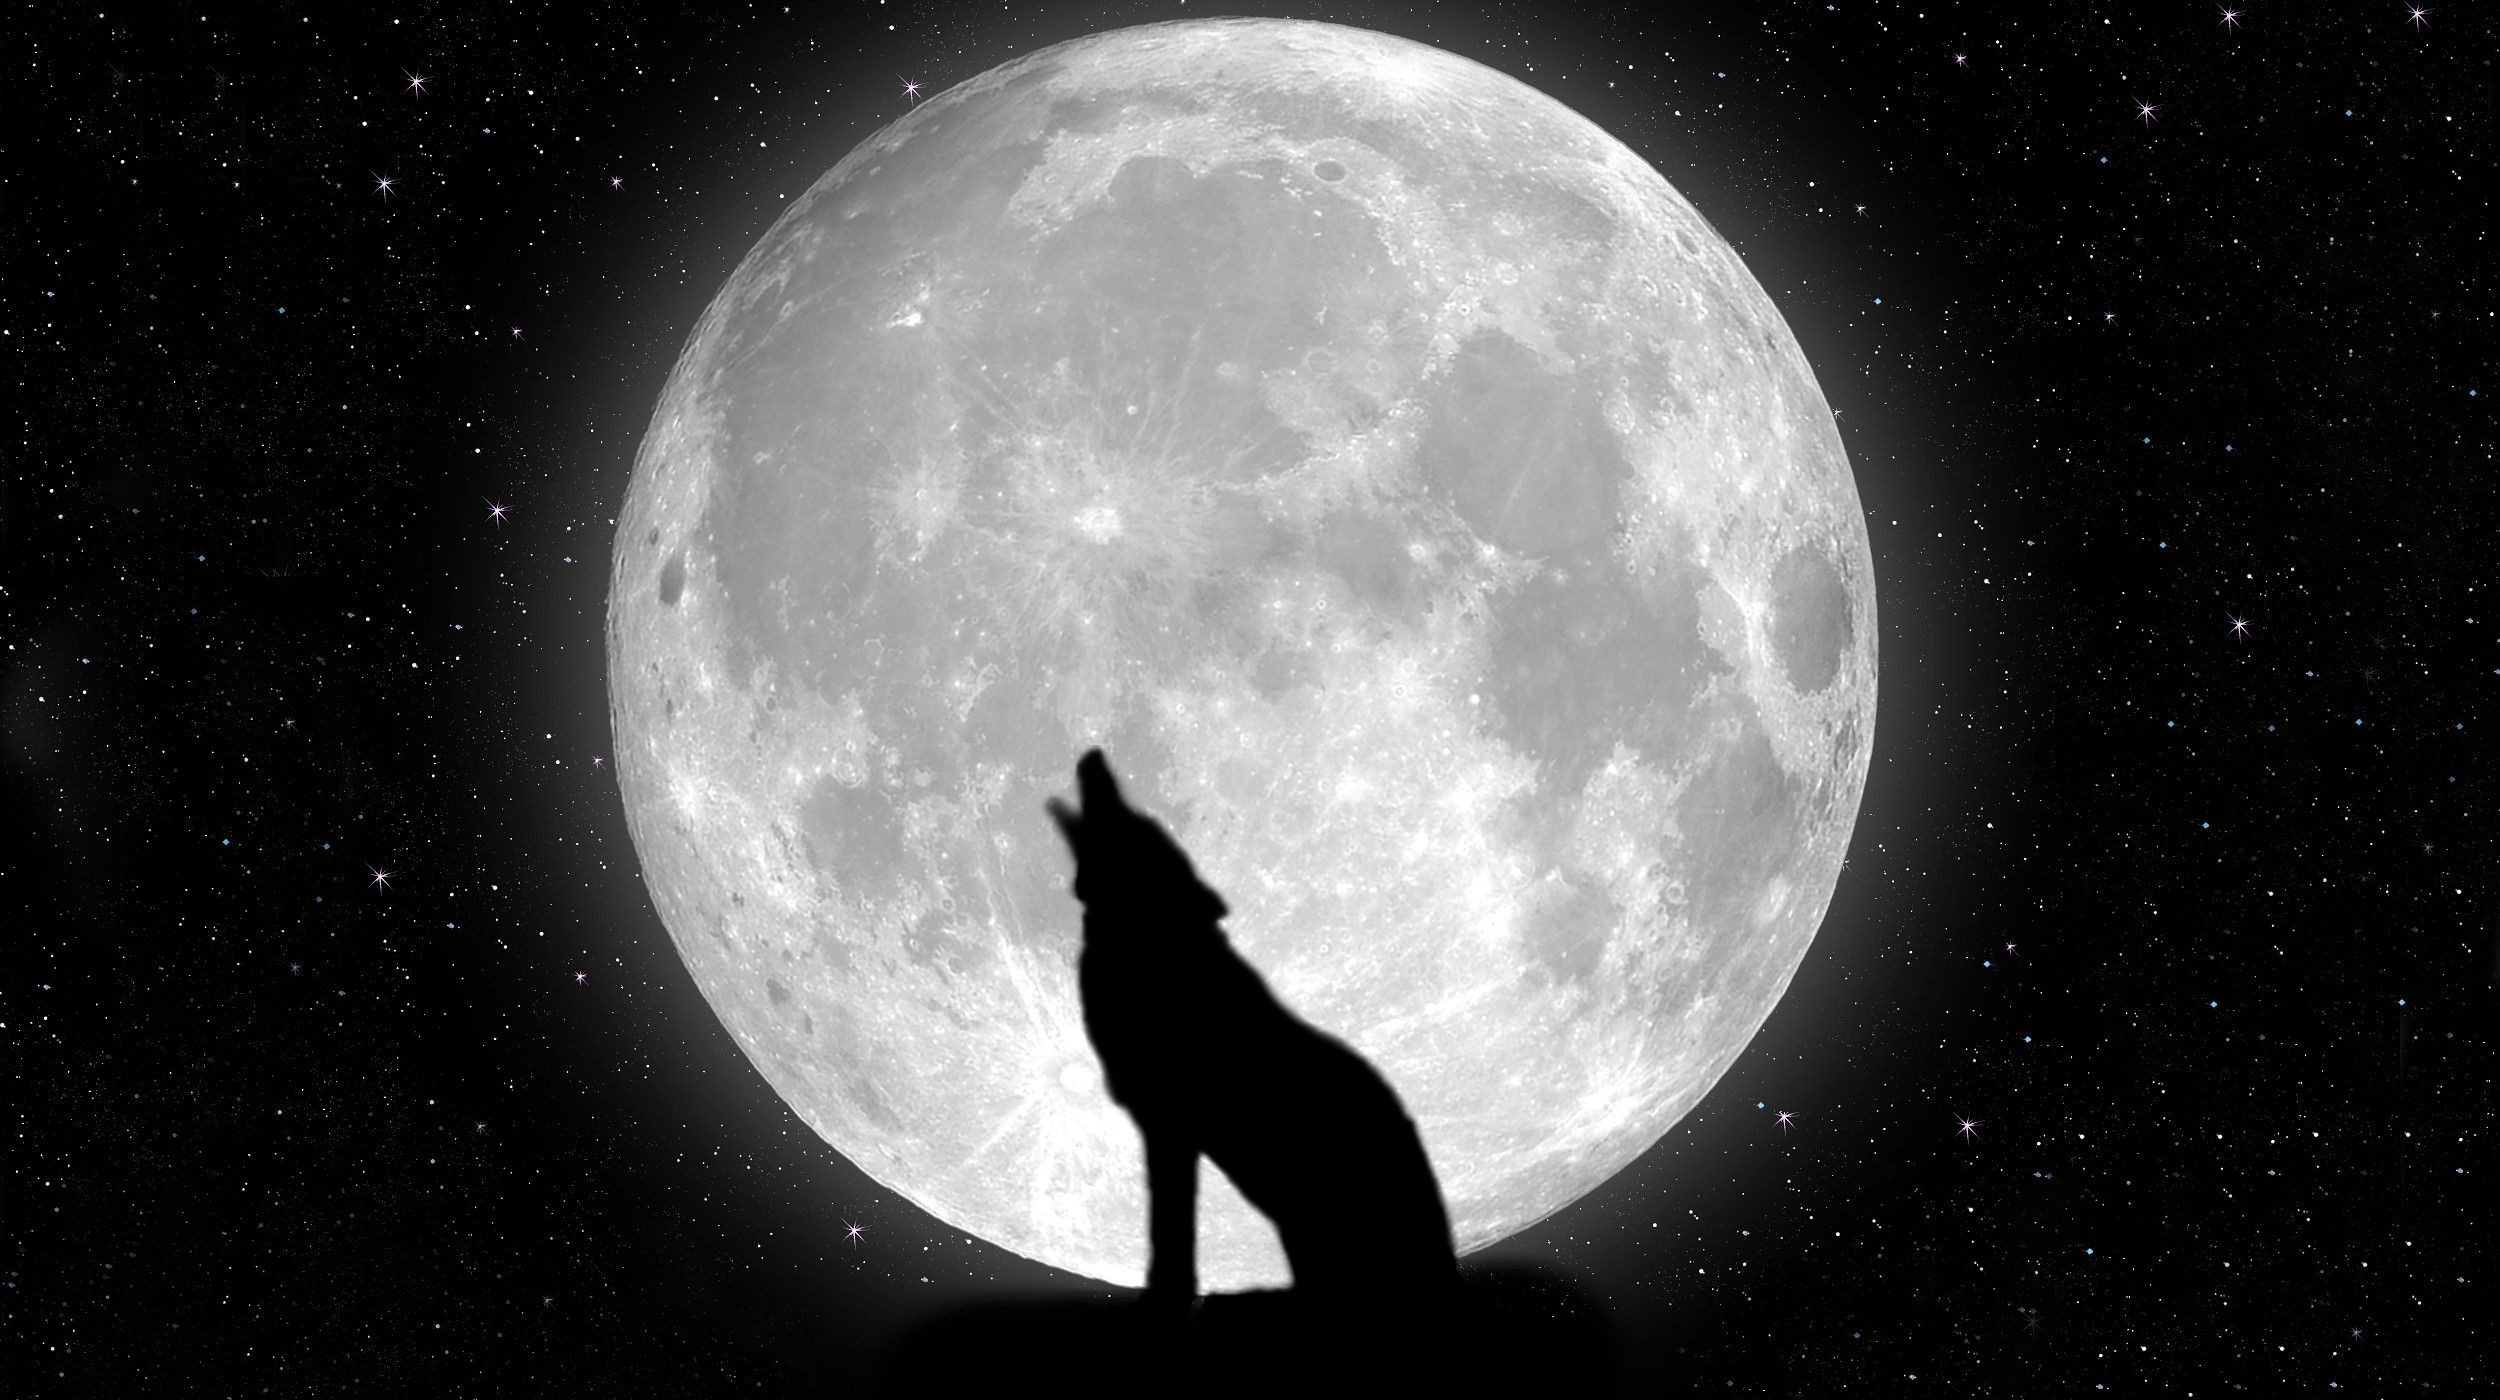 2500x1400 Wolf Wallpapers Wallpaper Cave · Wolf Wallpapers 1920x1080 Wallpaper Cave  ...